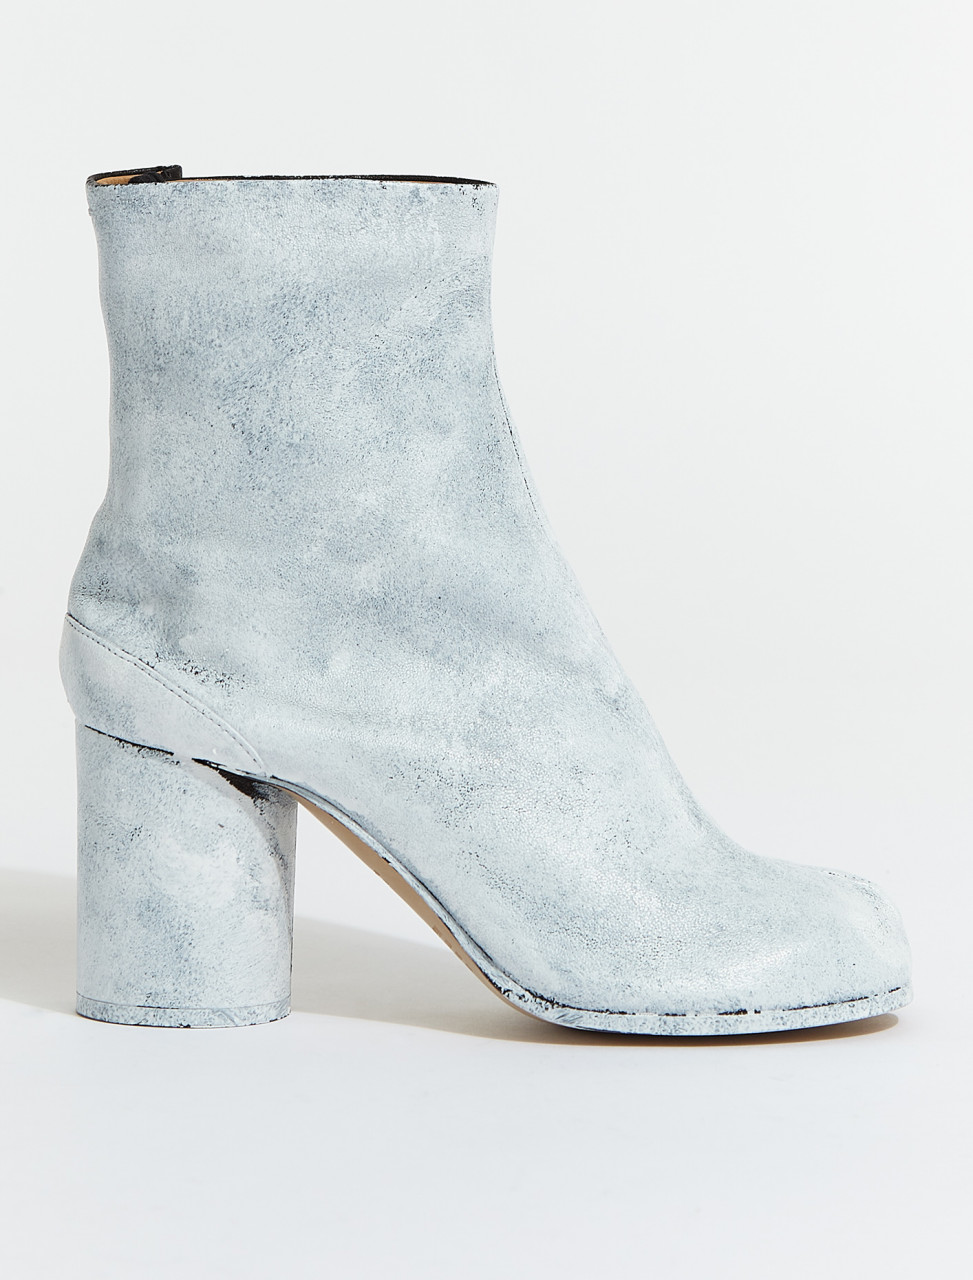 S58WU0260-P4162-H1532 MAISON MARGIELA TABI BOOT IN WHITE PAINT